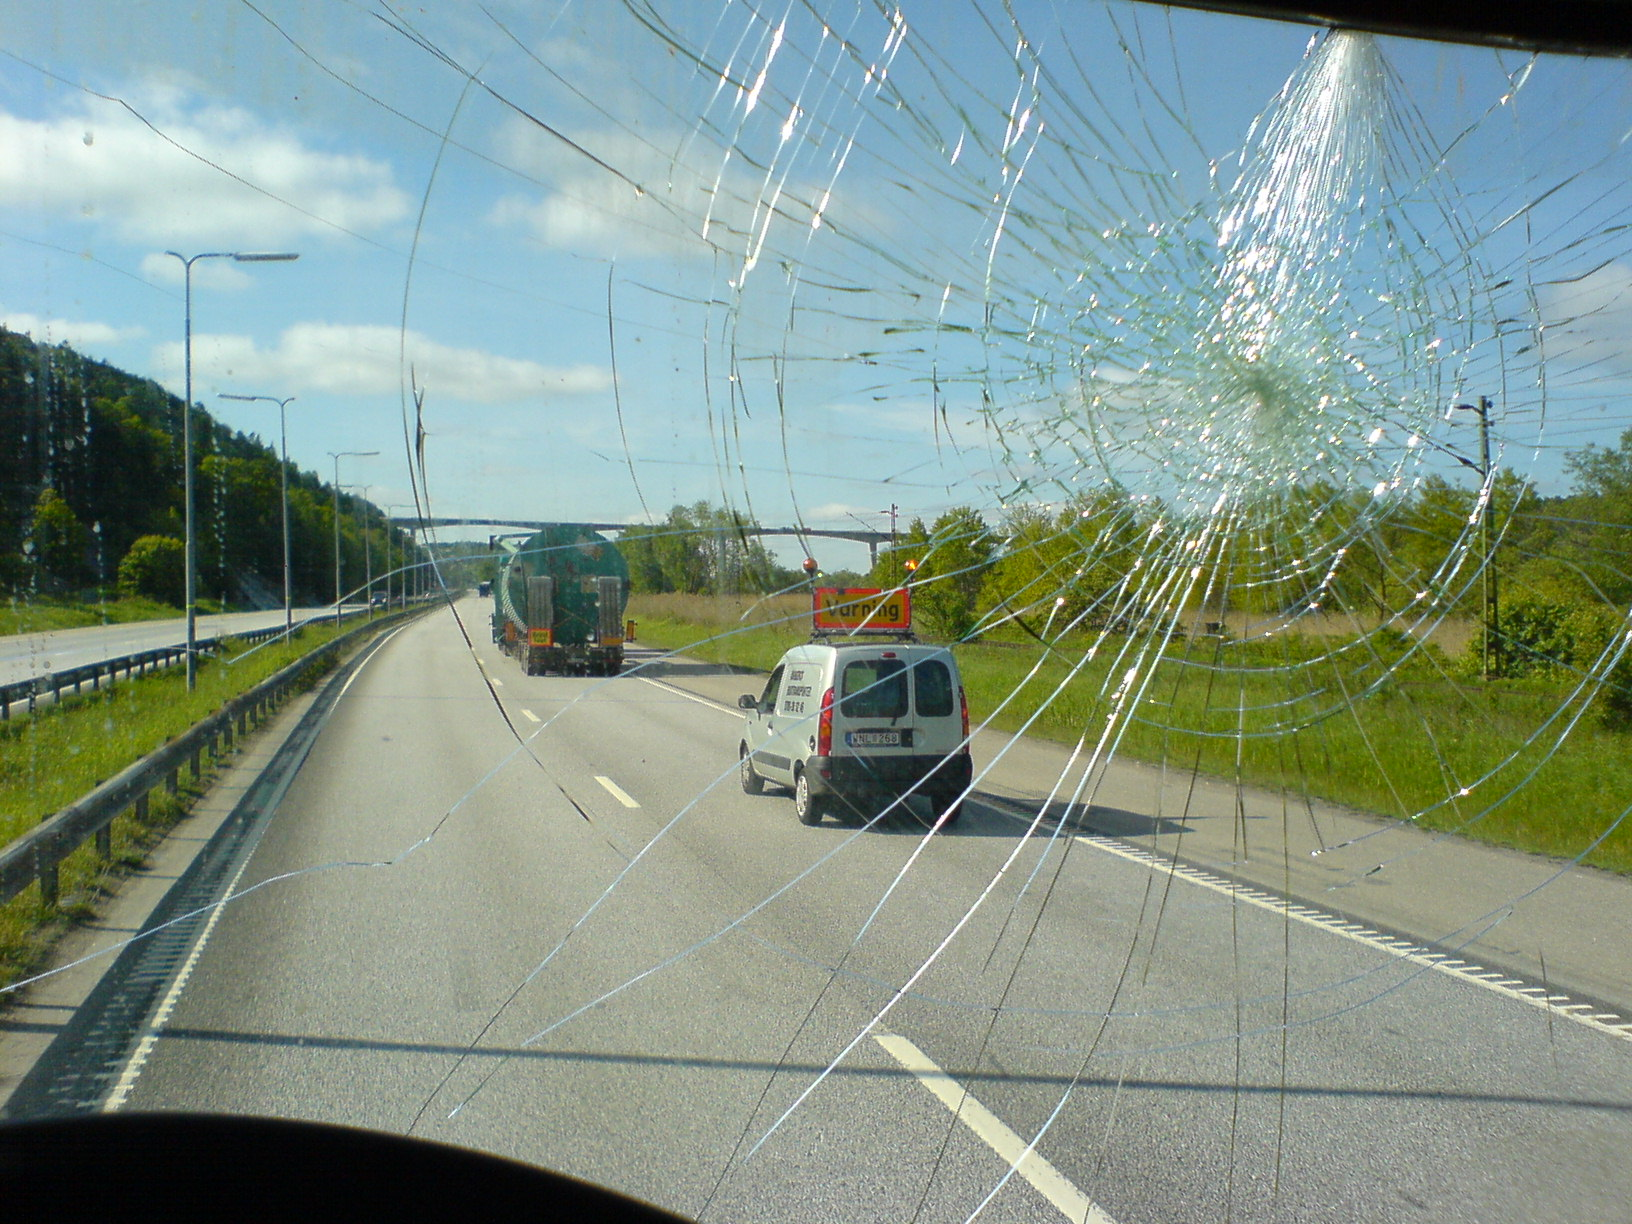 A damaged windscreen is a danger for motorists. A windshield in Nelspruit will keep you safe on the roads.